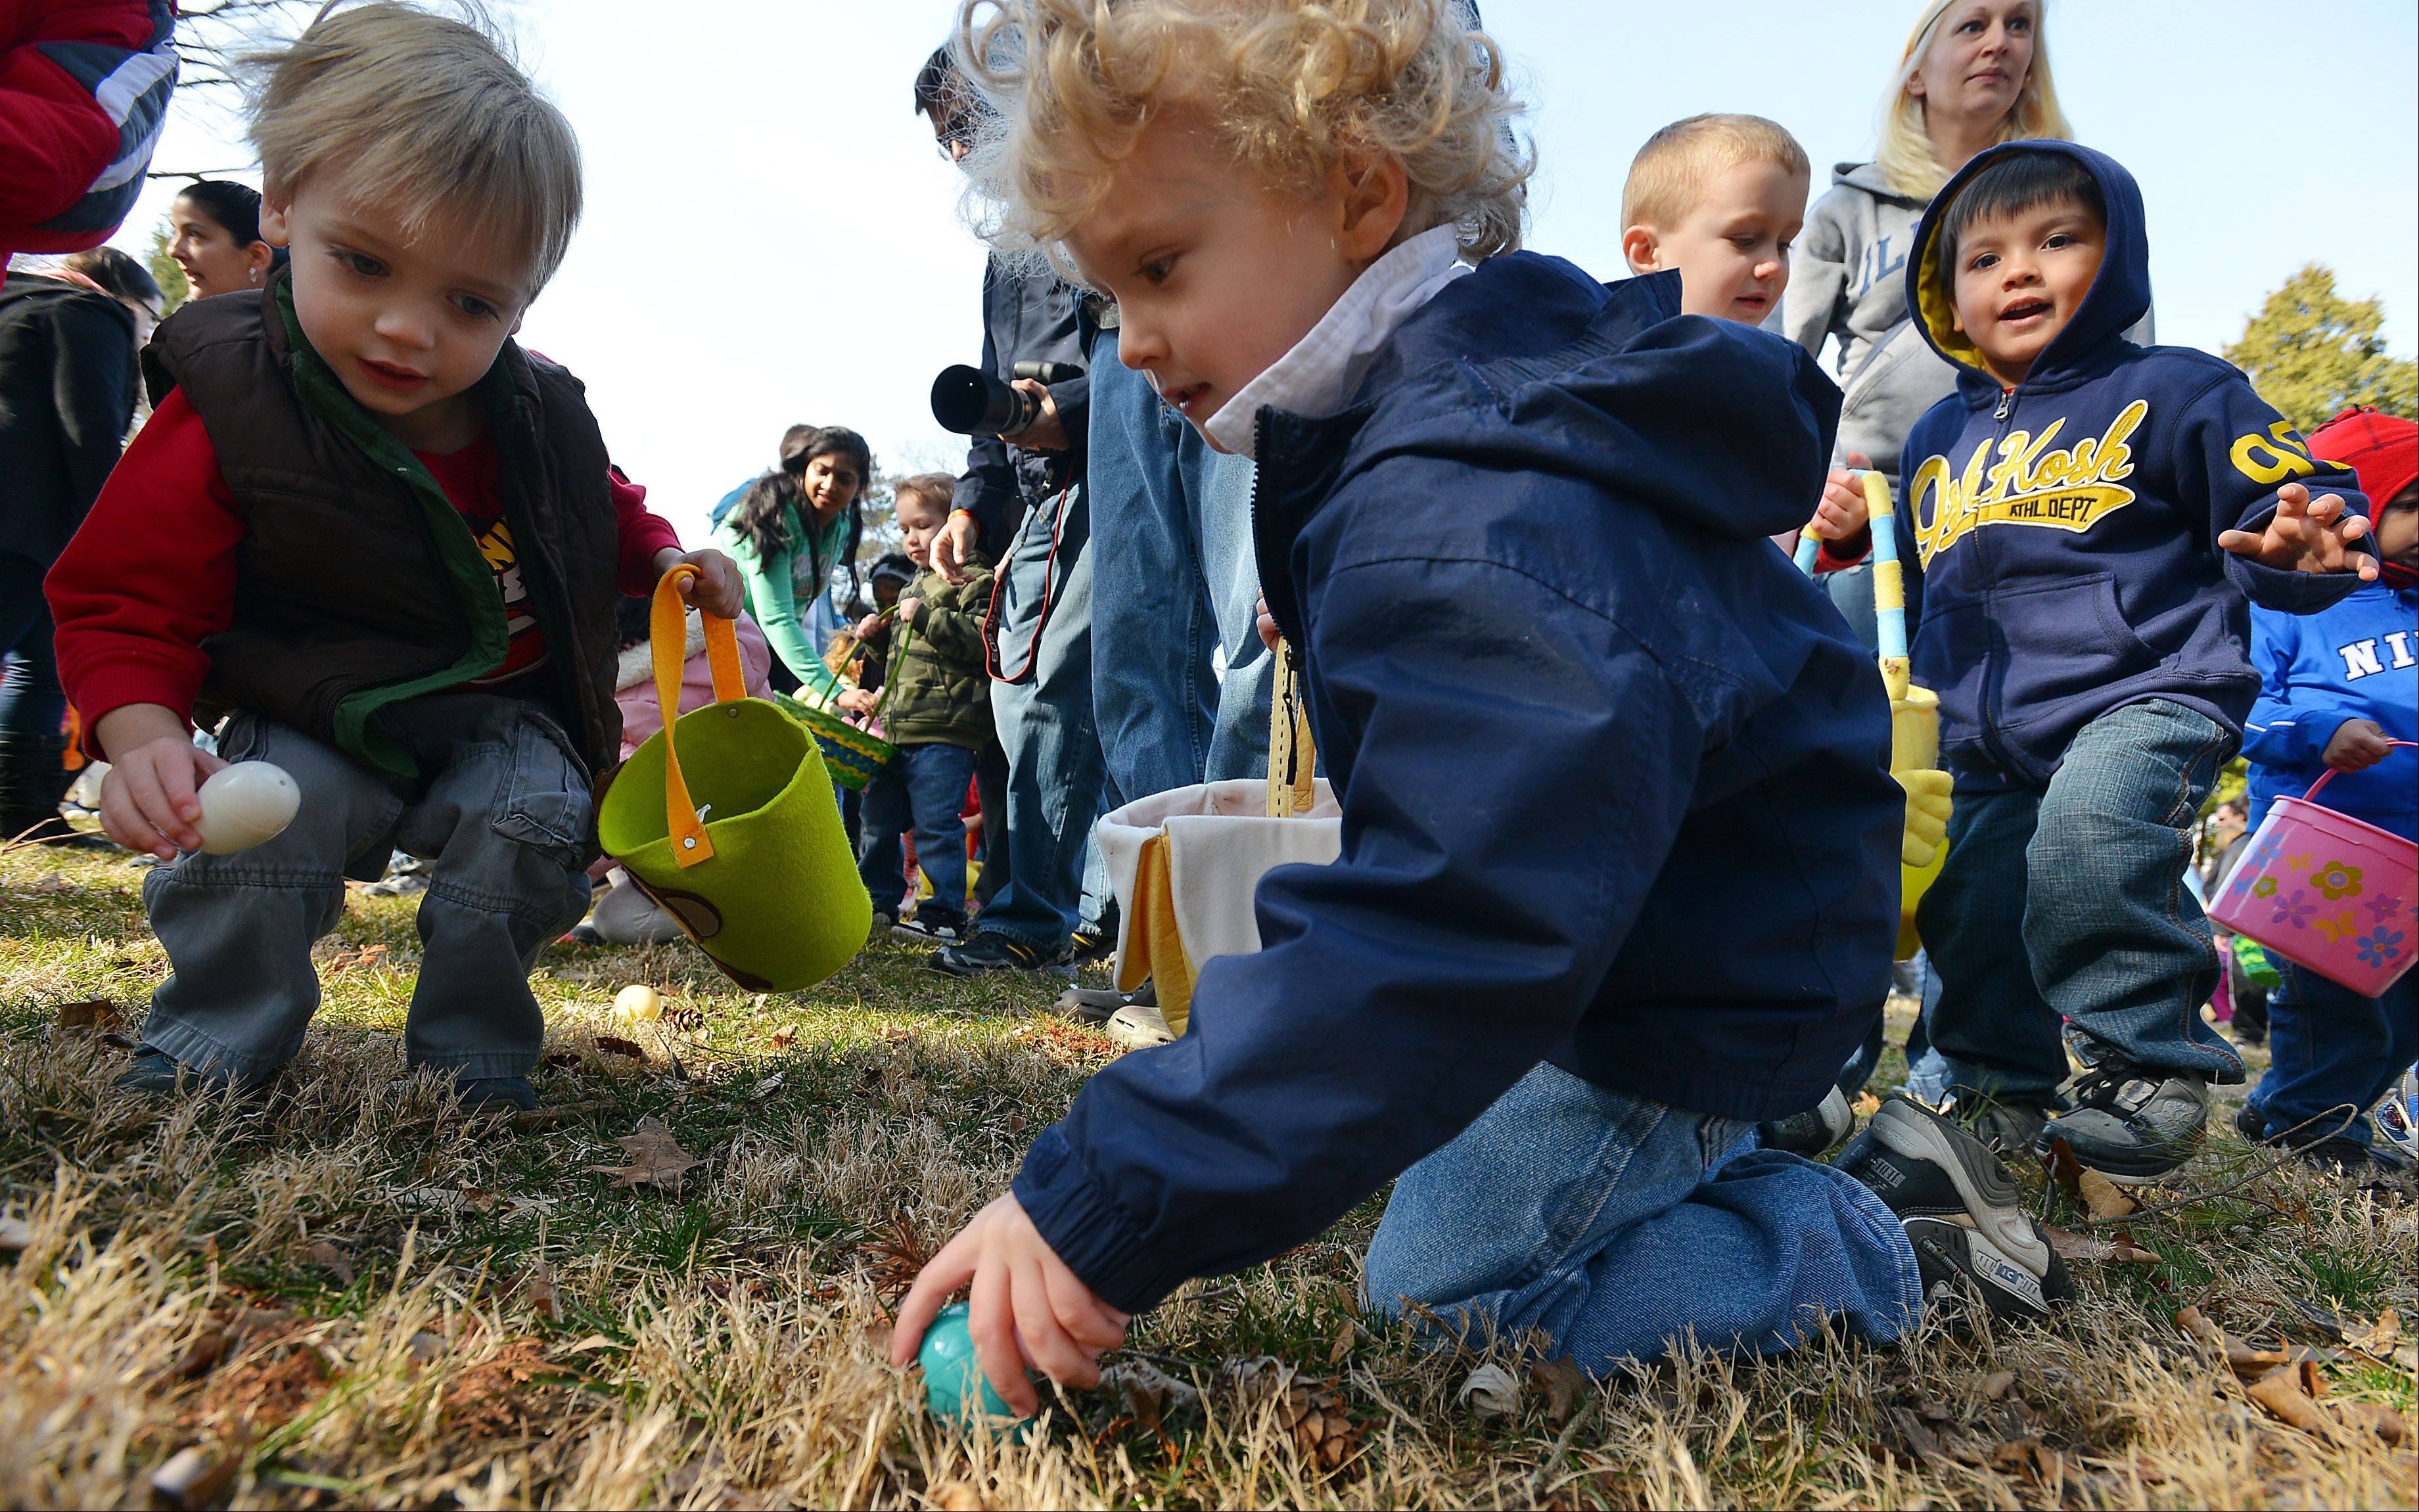 In a mass of humanity that was uncontrolled chaos Freddy Eichorn,4, of Arlington Heights manages to find an Easter egg in the big hunt held at the Gary Morava Recreation Center in Prospect Heights on Saturday.